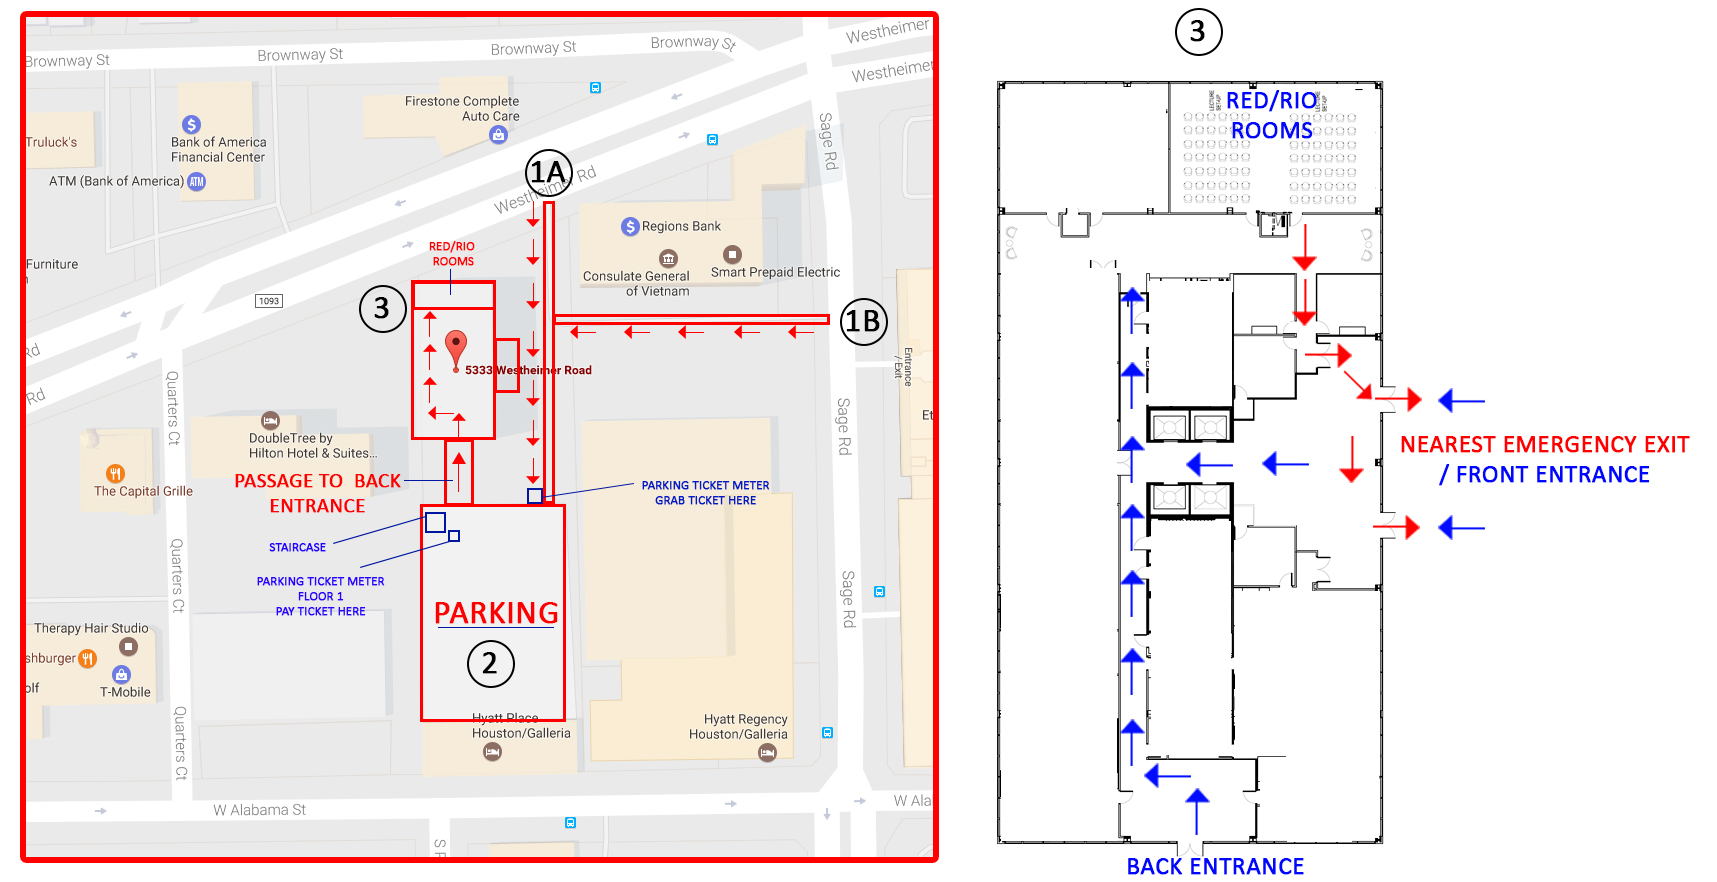 SPE GCS Data Analytics Event 1 - IHS Markit Venue/Parking Directions